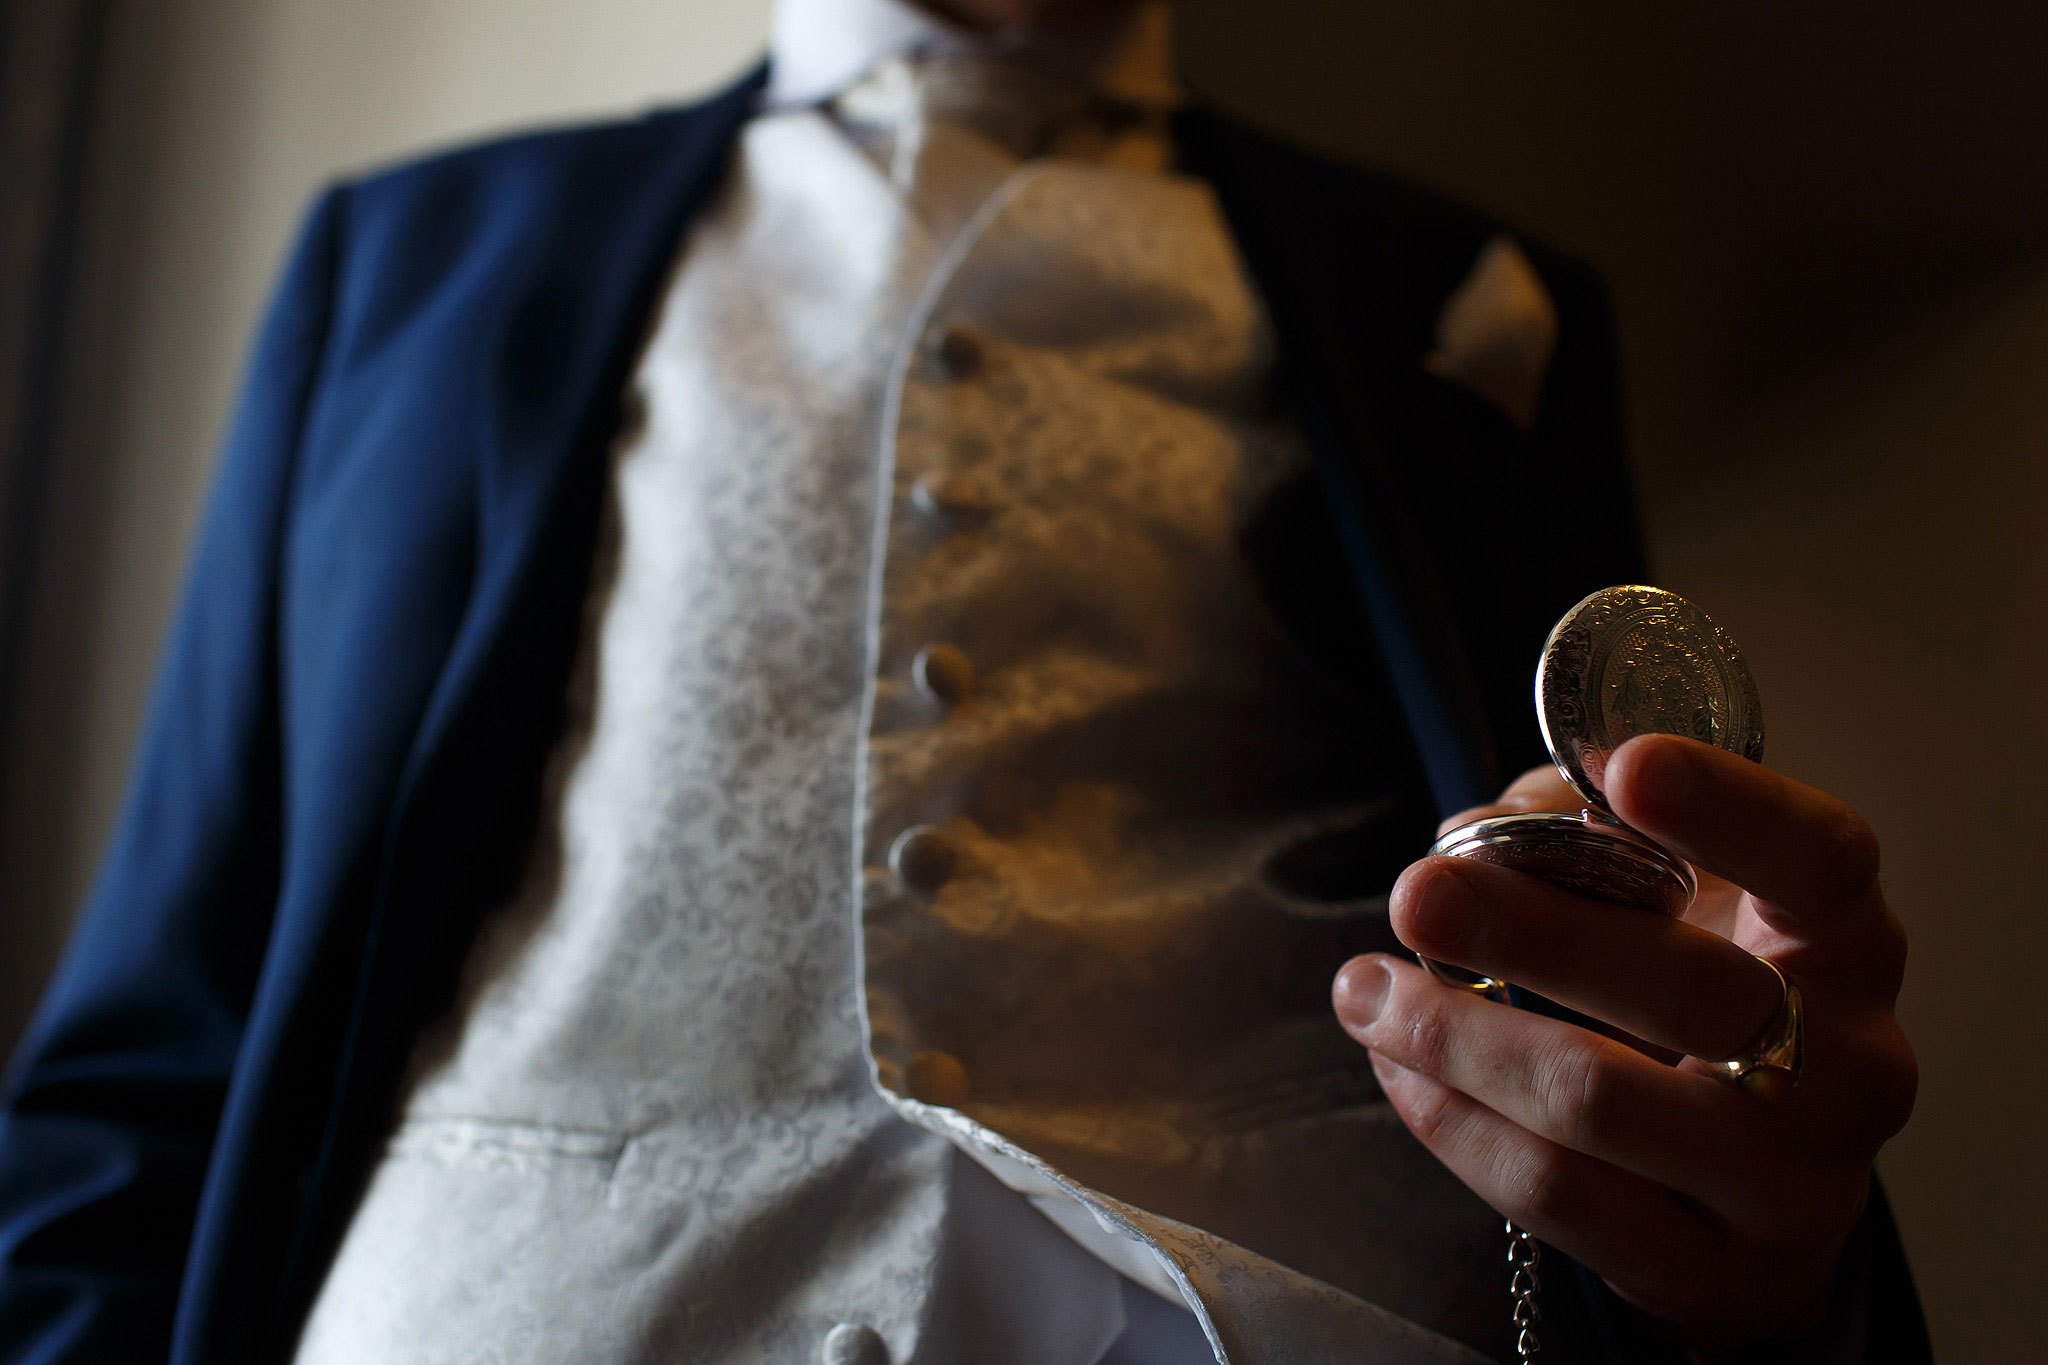 Groom wearing blue suit and cream waist coat holding pocket watch on morning of wedding day - The Villa at Wrea Green Wedding Photography - Toni Darcy Photography